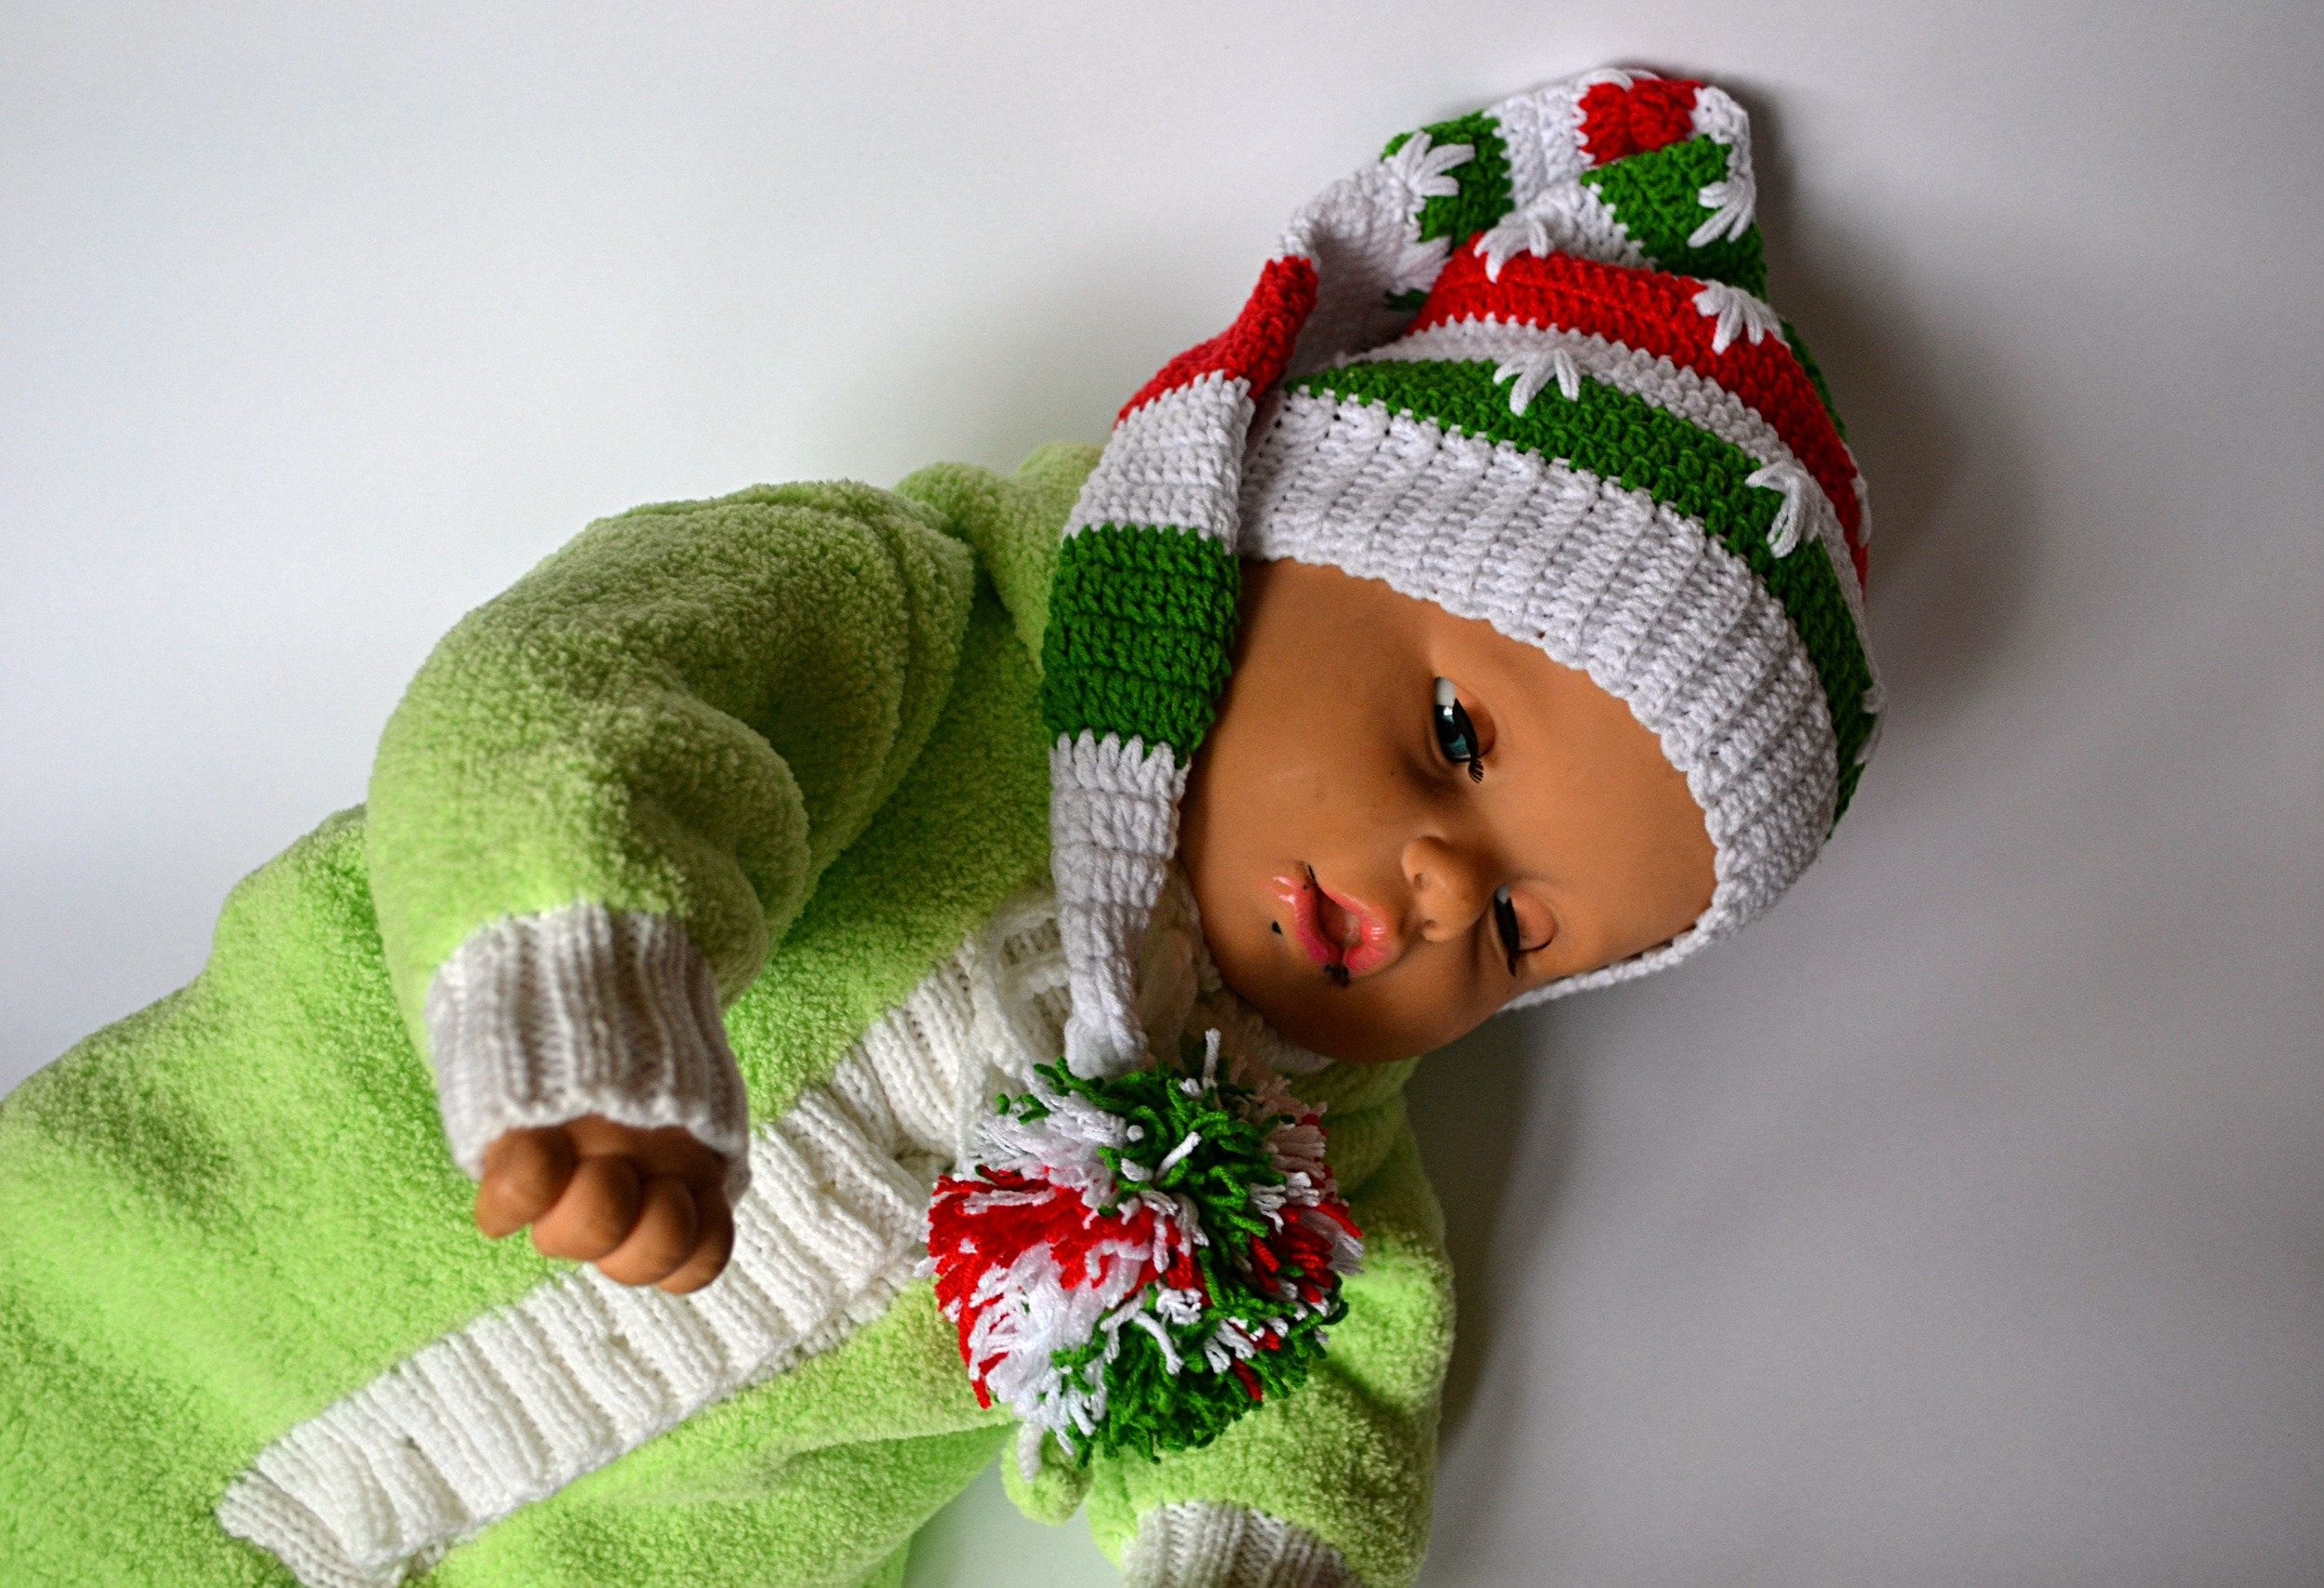 elf hat infant christmas hat newborn photo prop long santa hat #crochethat #babyhat #christmashat #babypompomhat #infantchristmashat  #elfhat #crochetbabyhats #newbornhats #newbornphotoprop #crochetsantahat #santababyhat #crochetelfhat #longsantahat